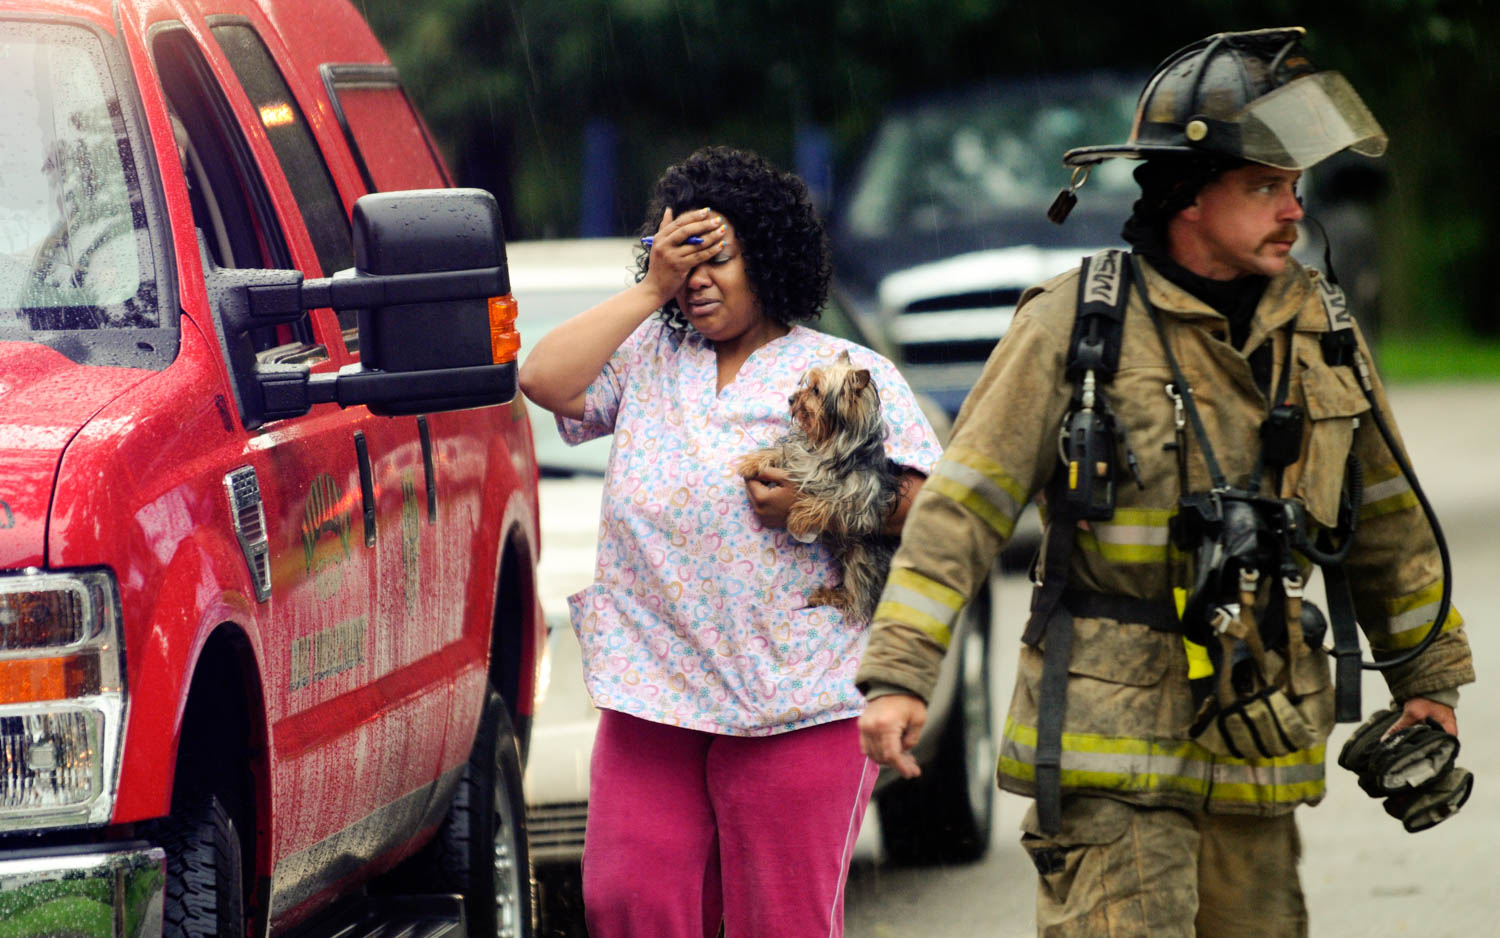 Katrina Jackson, of Moline, holds her dog close after the animal was rescued from a fire which damaged the duplex she lives at 1433 28th Ave. in Moline June 23, 2010. The fire was confined to a second floor bedroom on the south side of the duplex. (Todd Mizener - Dispatch/Argus)